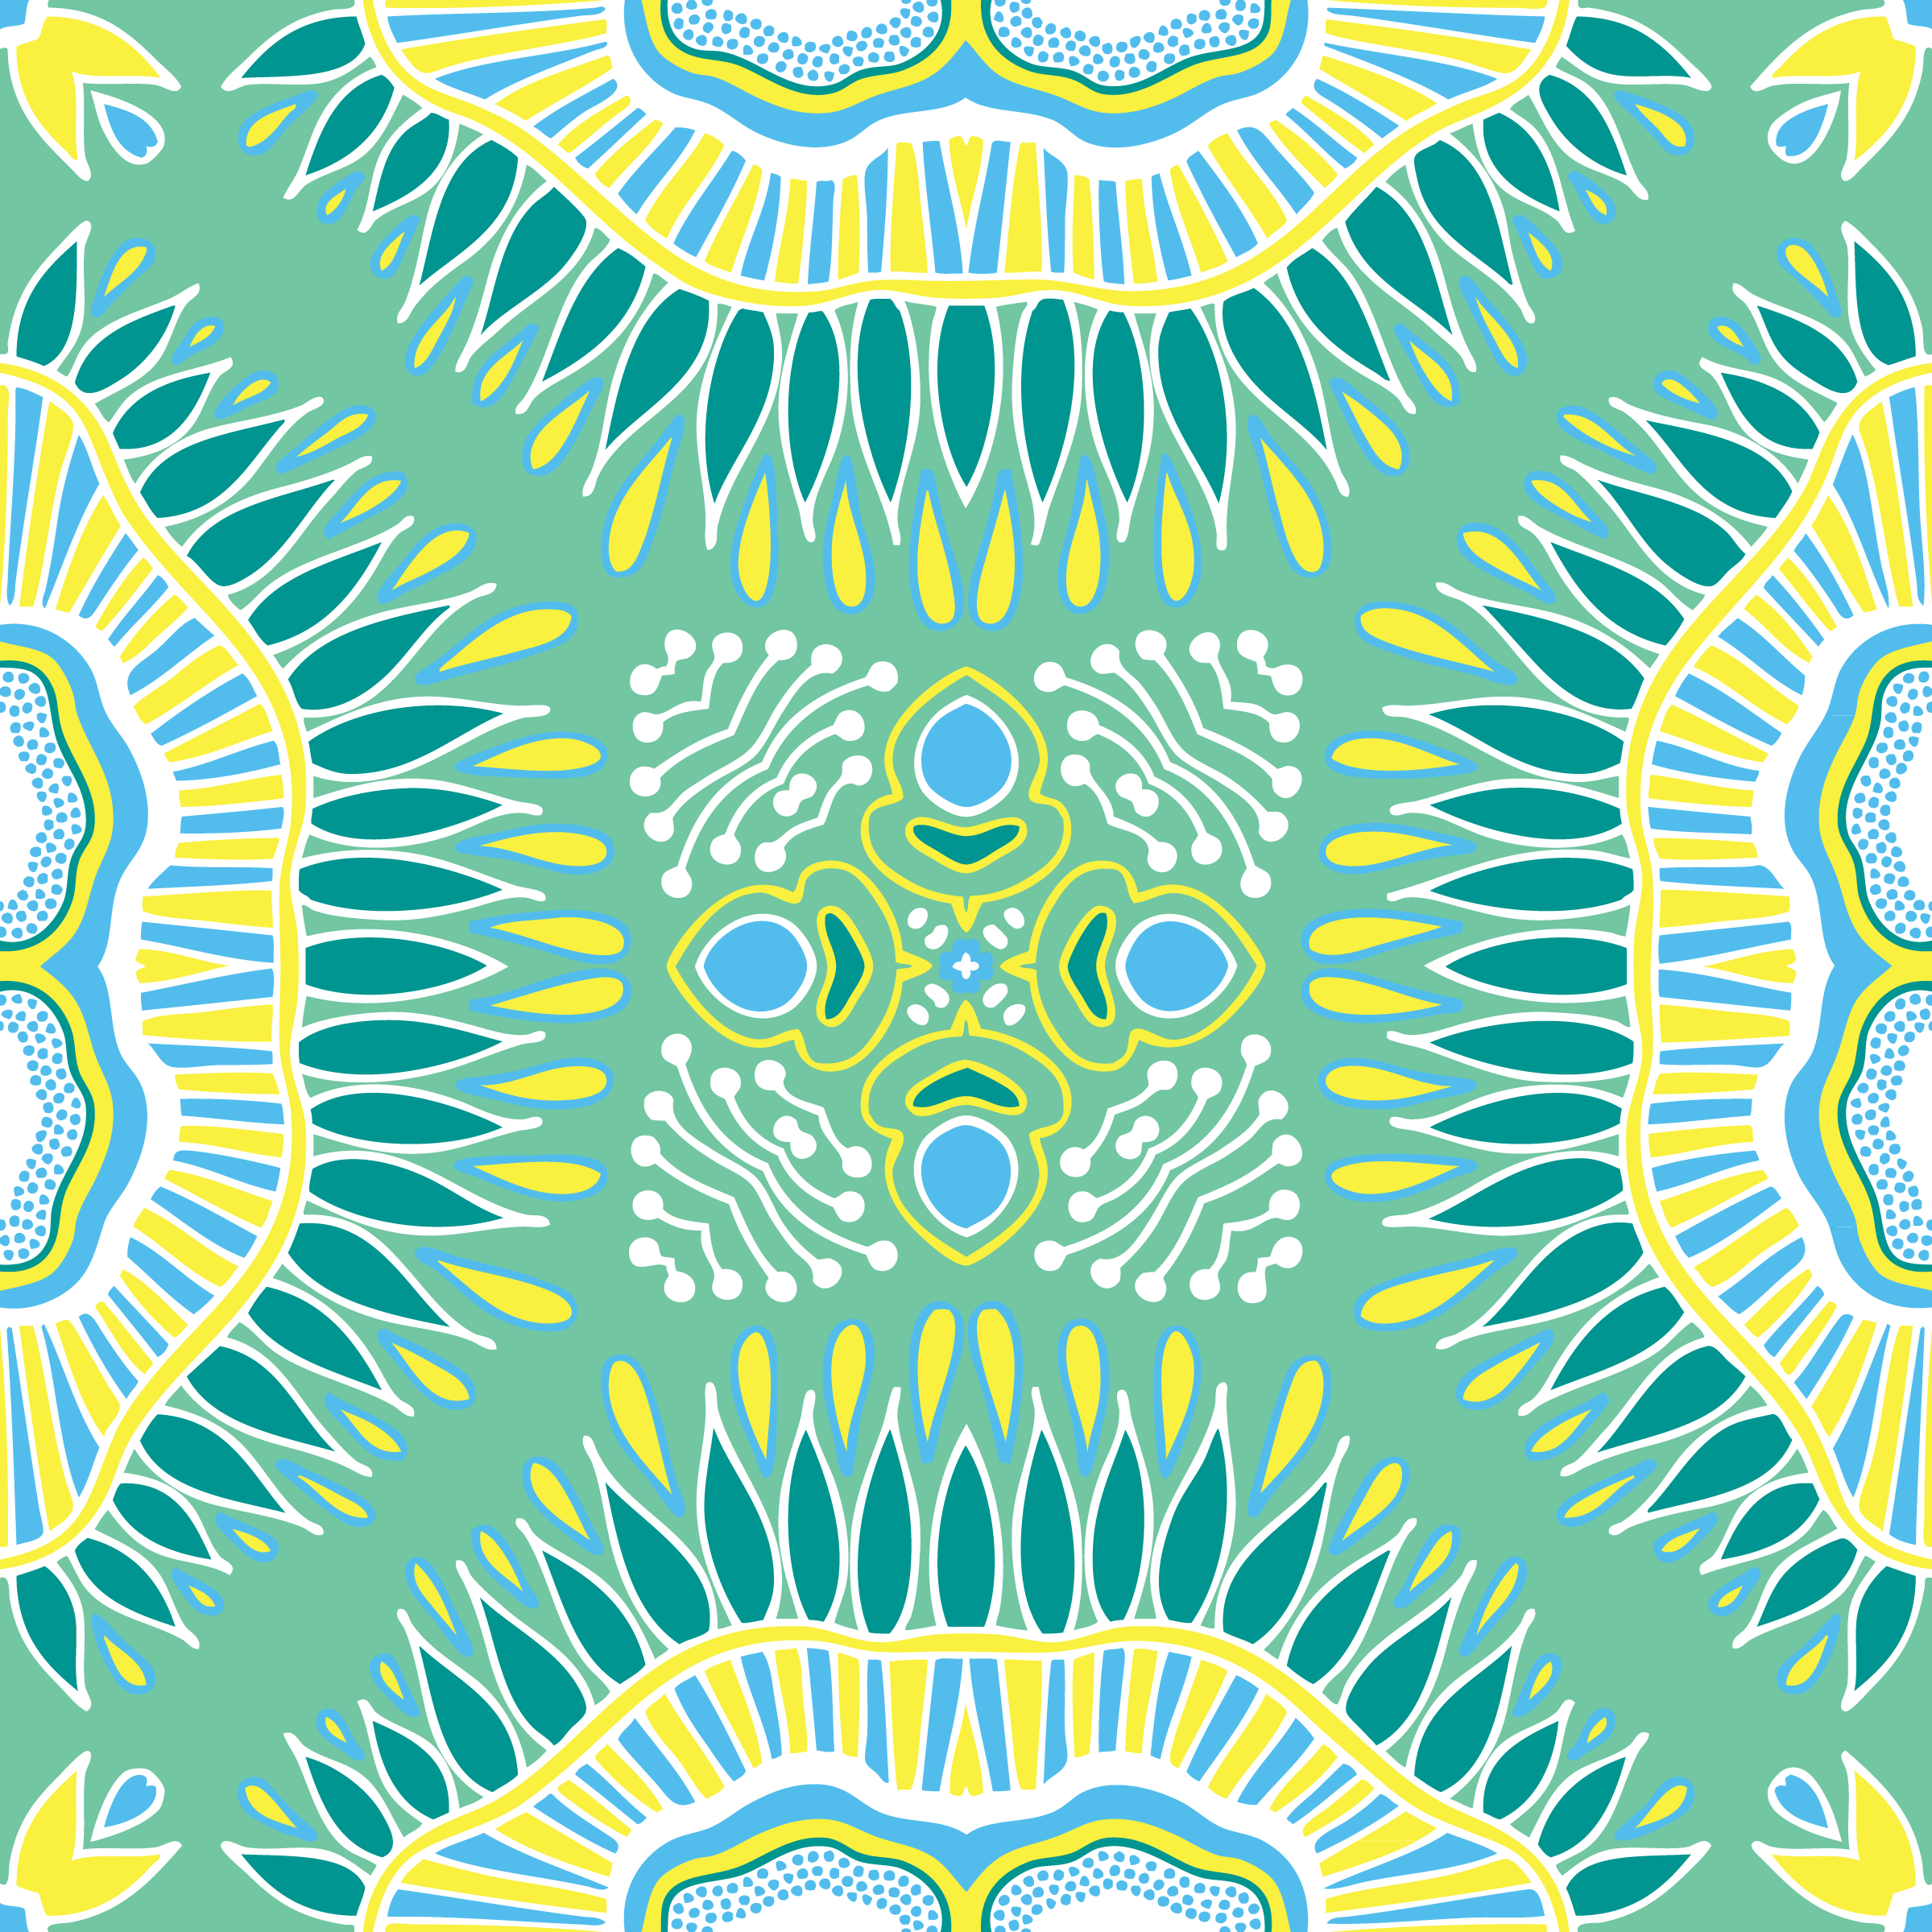 Design-6-blue-yellow-green.png